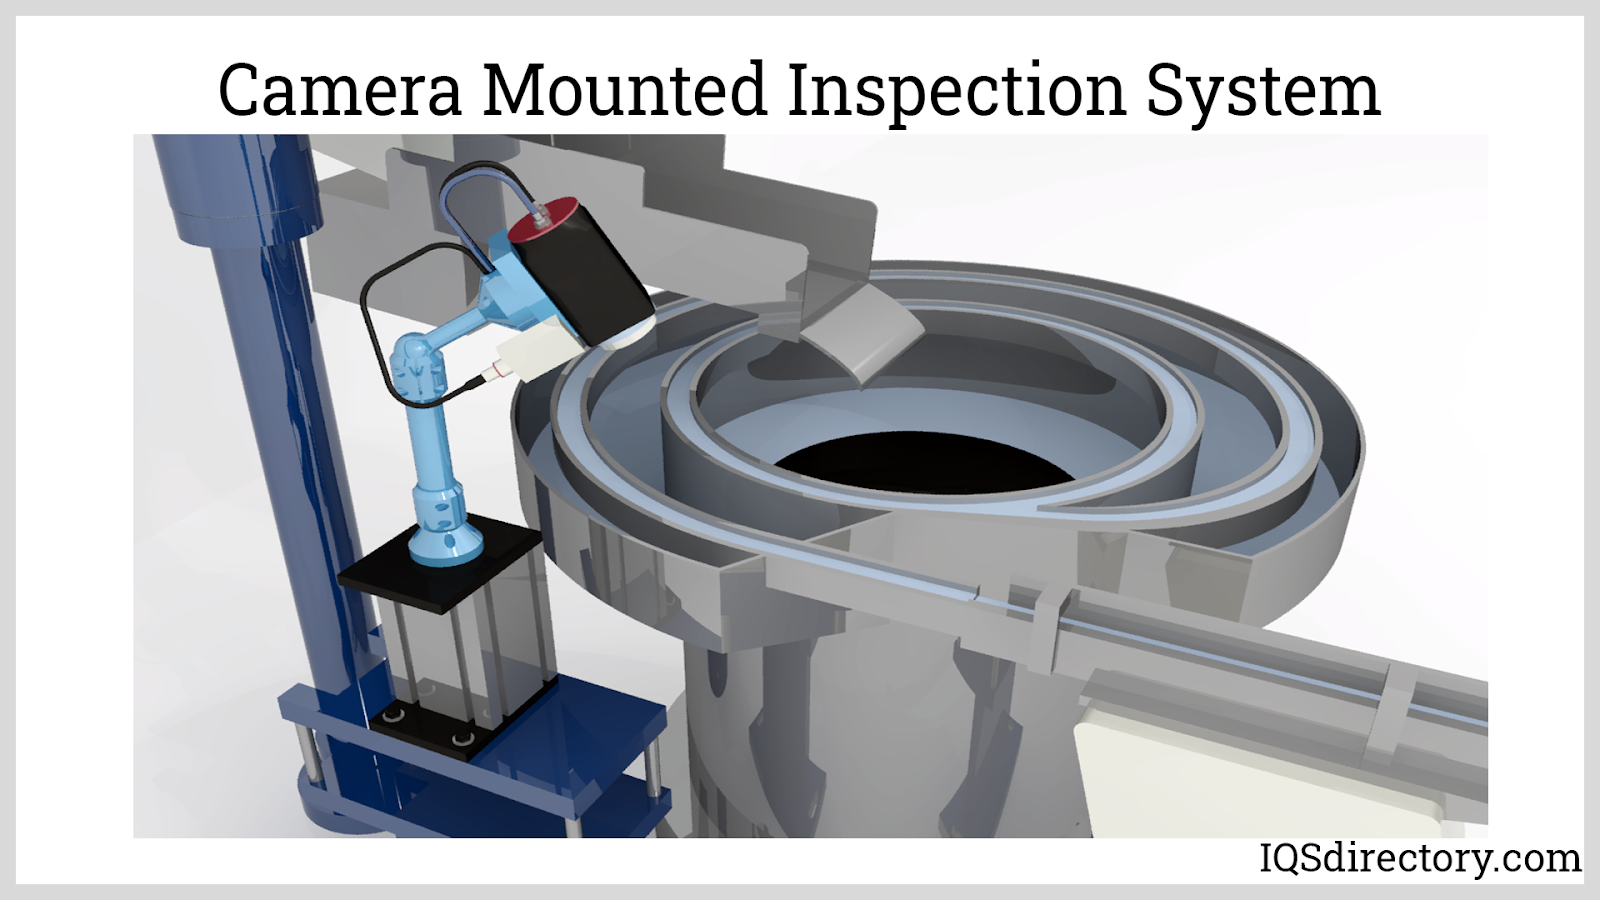 Camera Mounted Inspection System